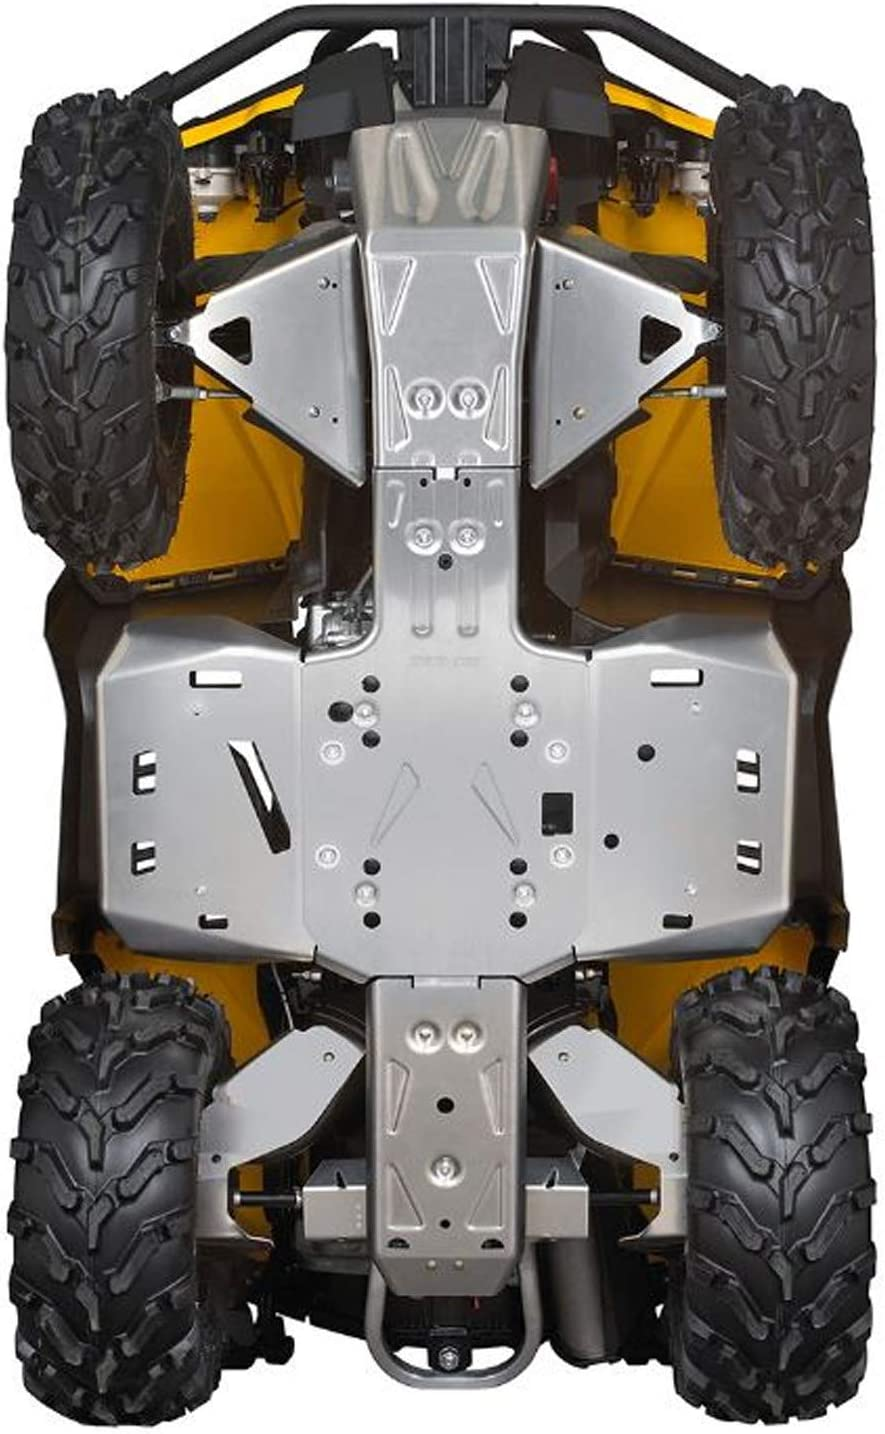 CAN-AM OUTLANDER G2 CHASSIS FRONT SKID PLATE 715000926